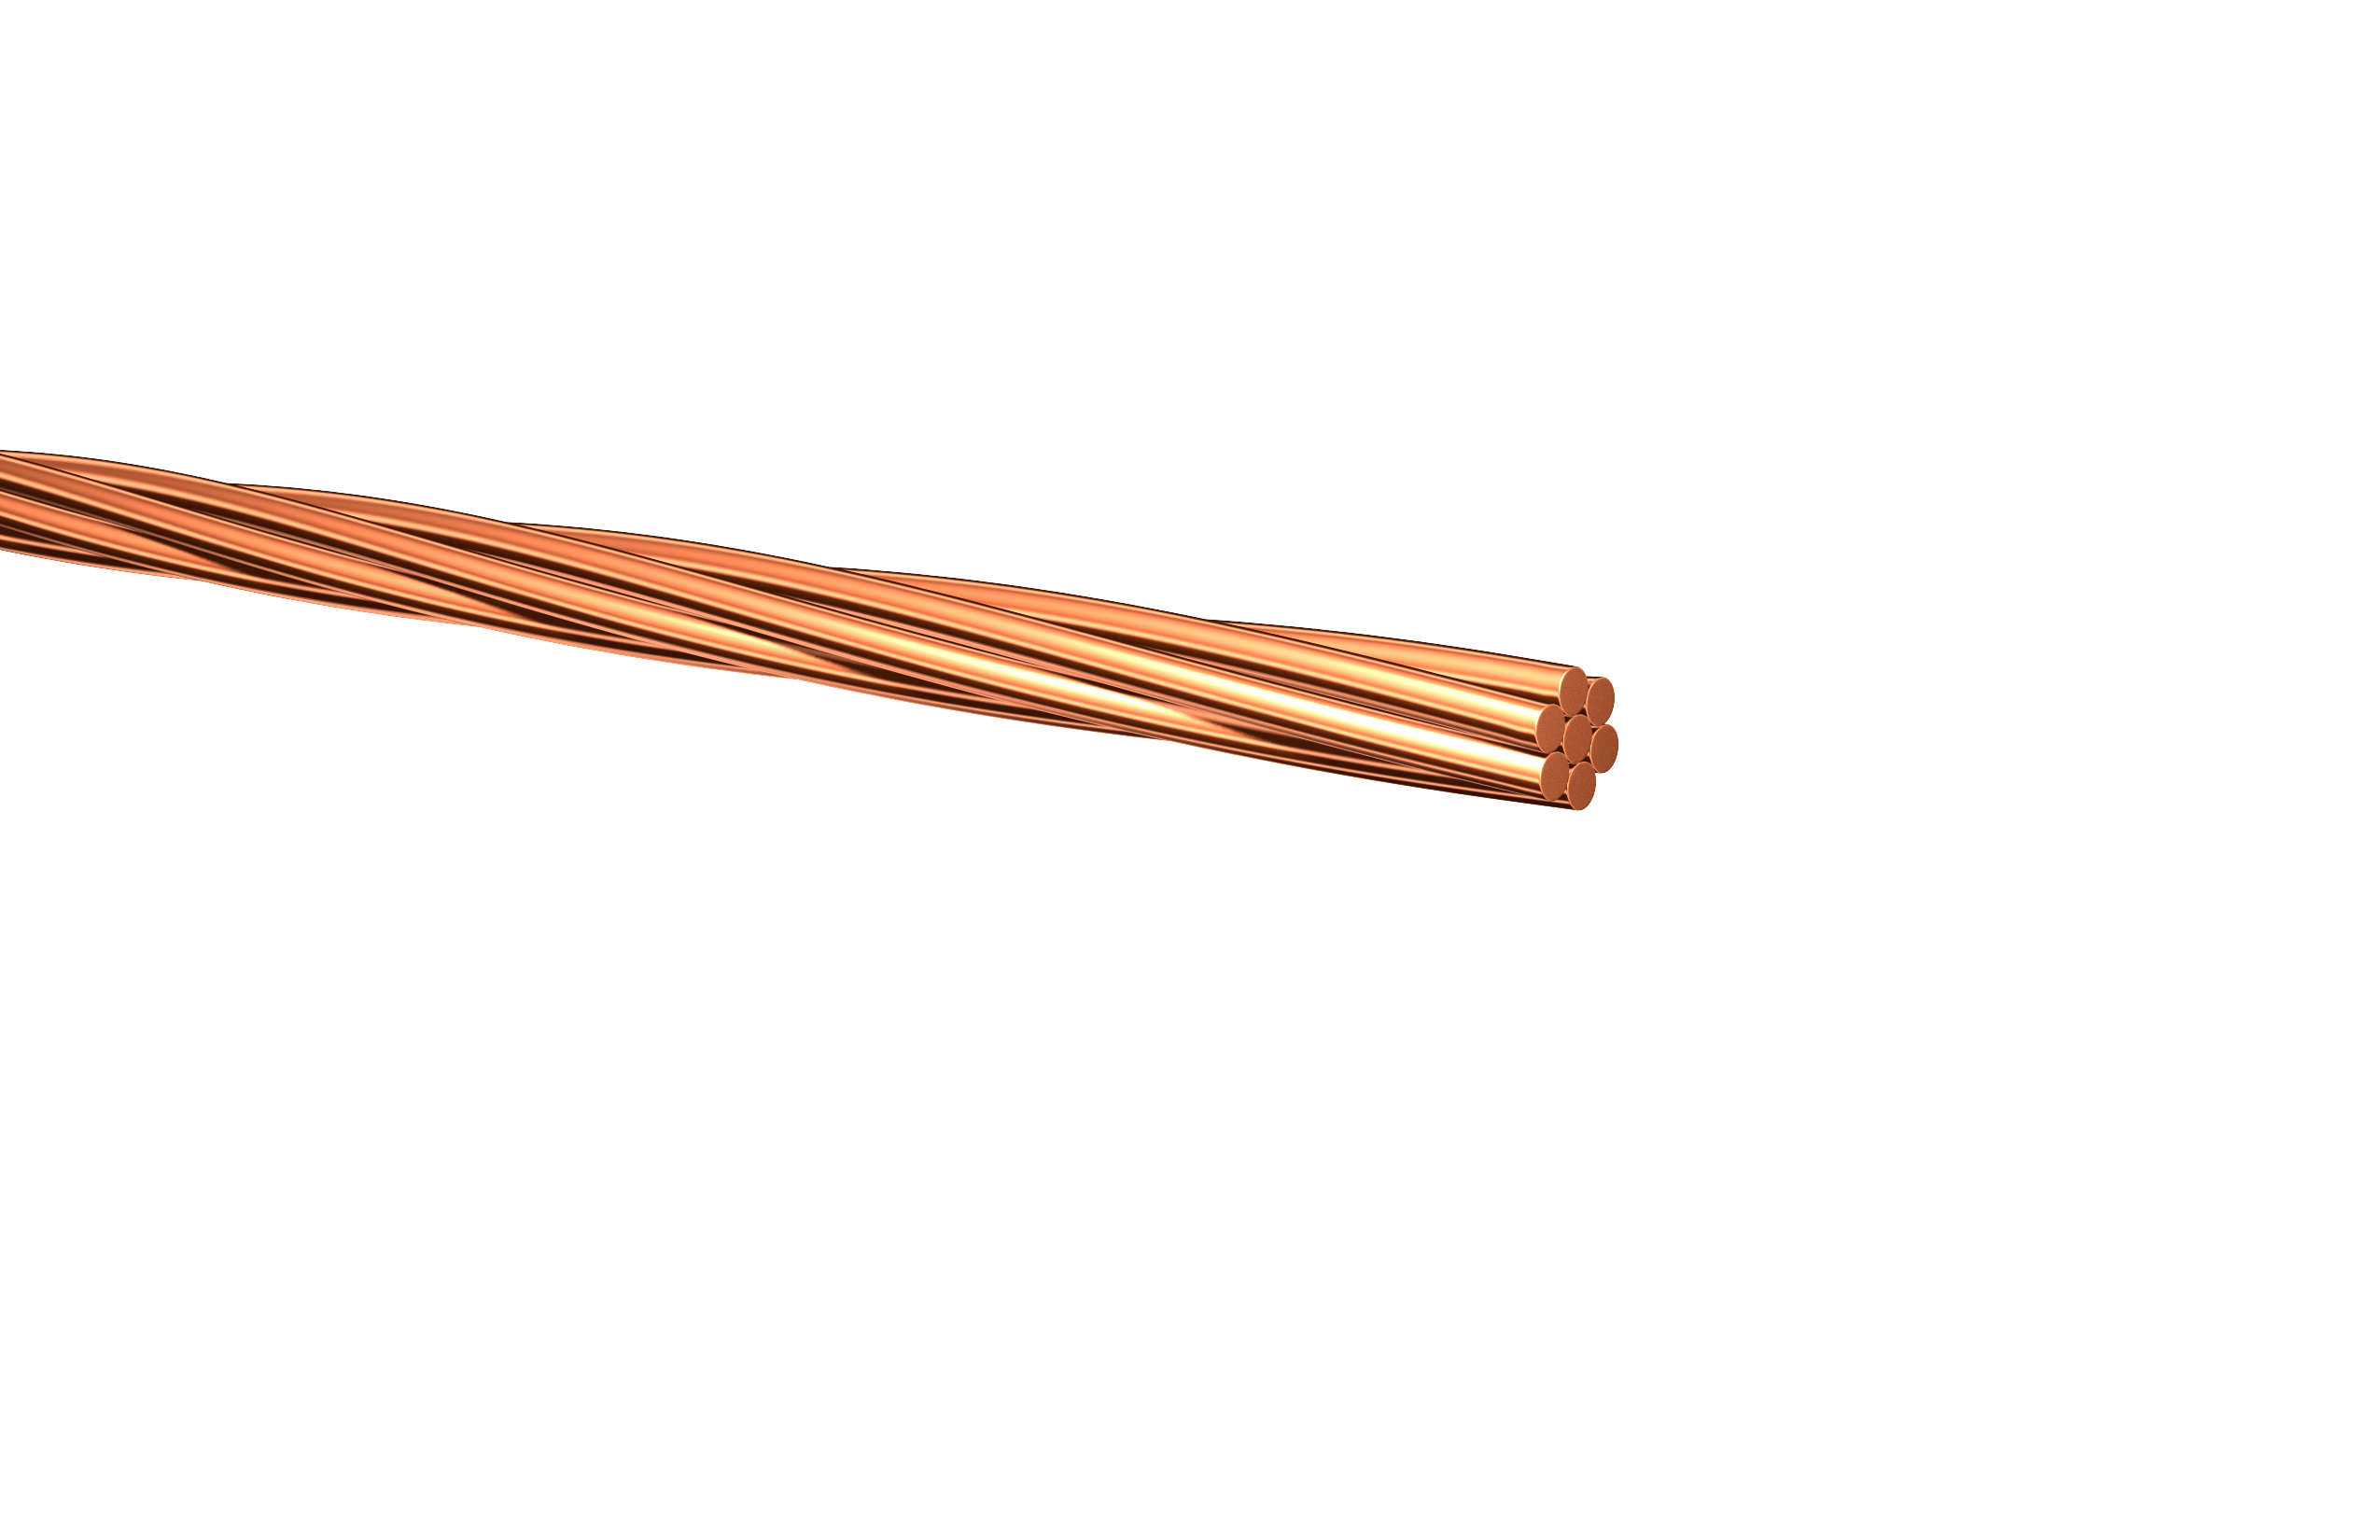 HW000: Solid or Stranded Bare Copper | Houston Wire & Cable Co.